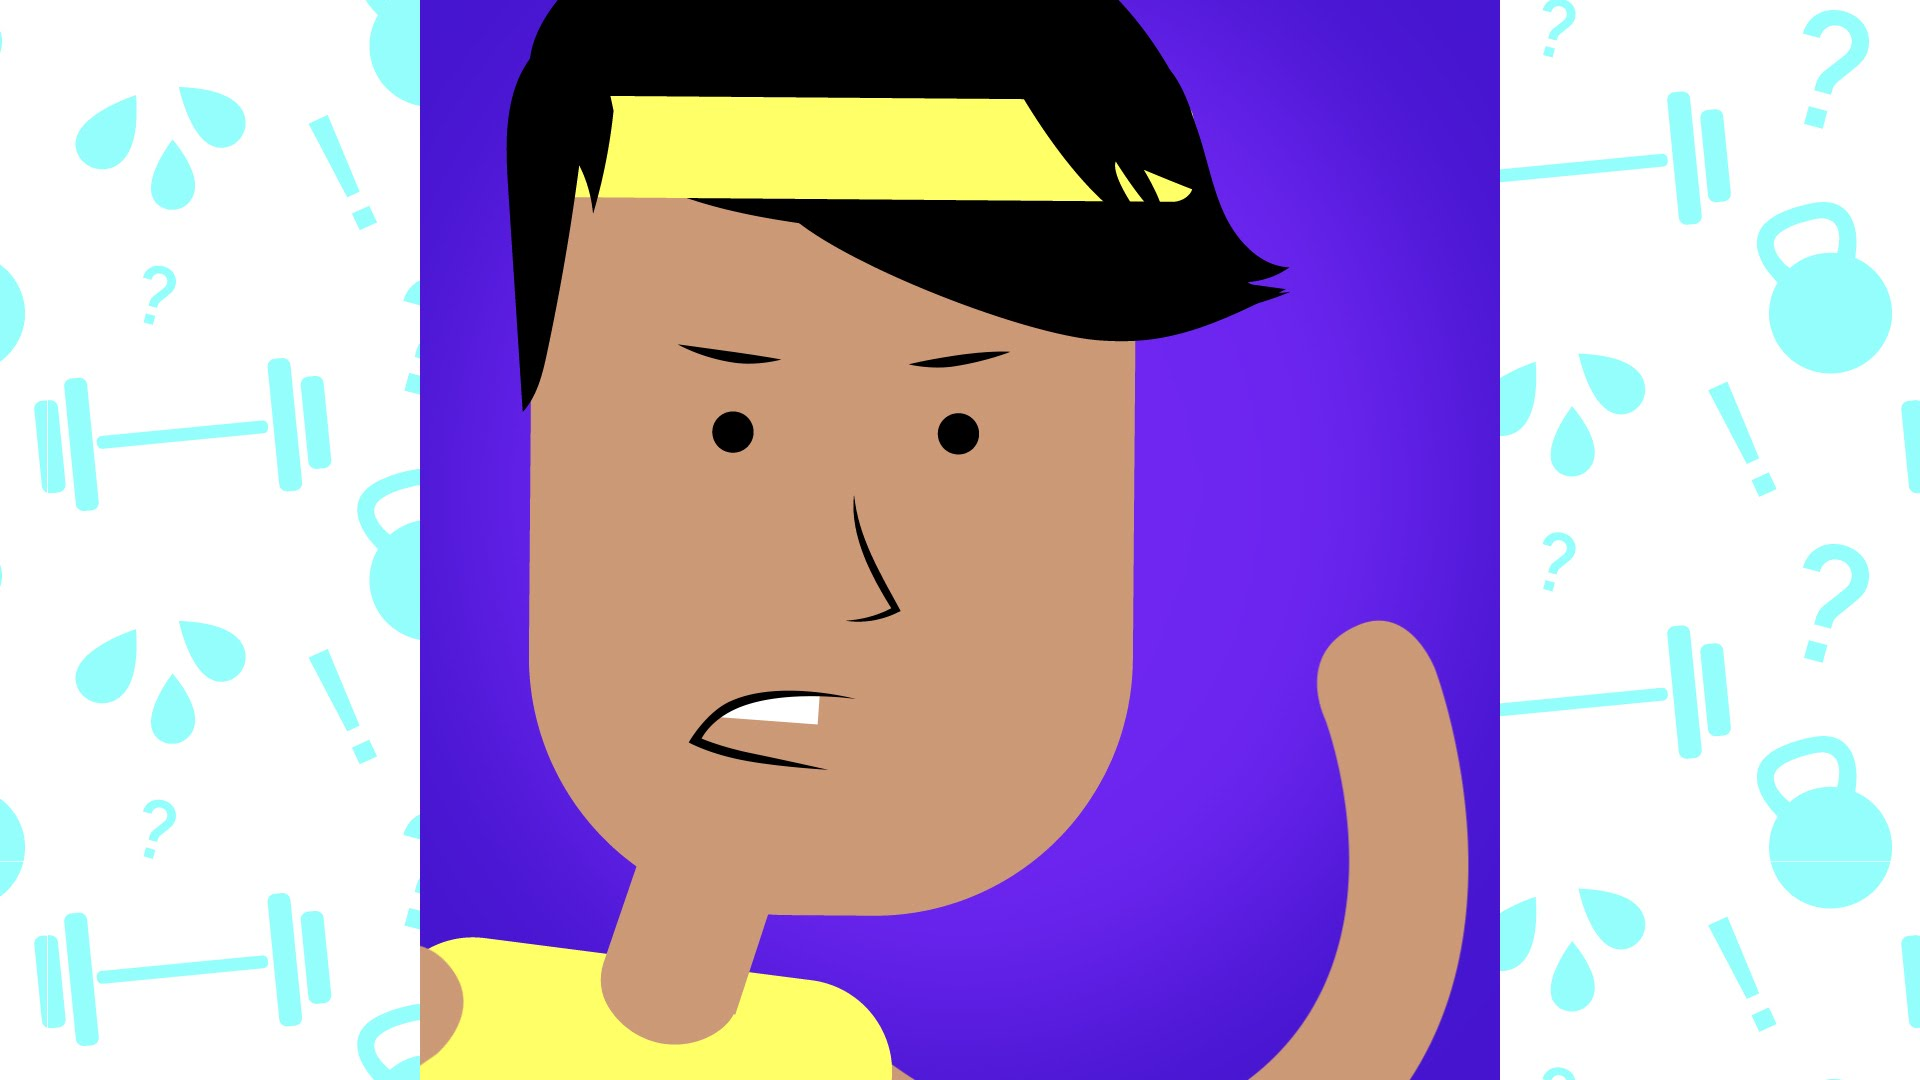 Noise clipart don t Noise What's about? Don't —